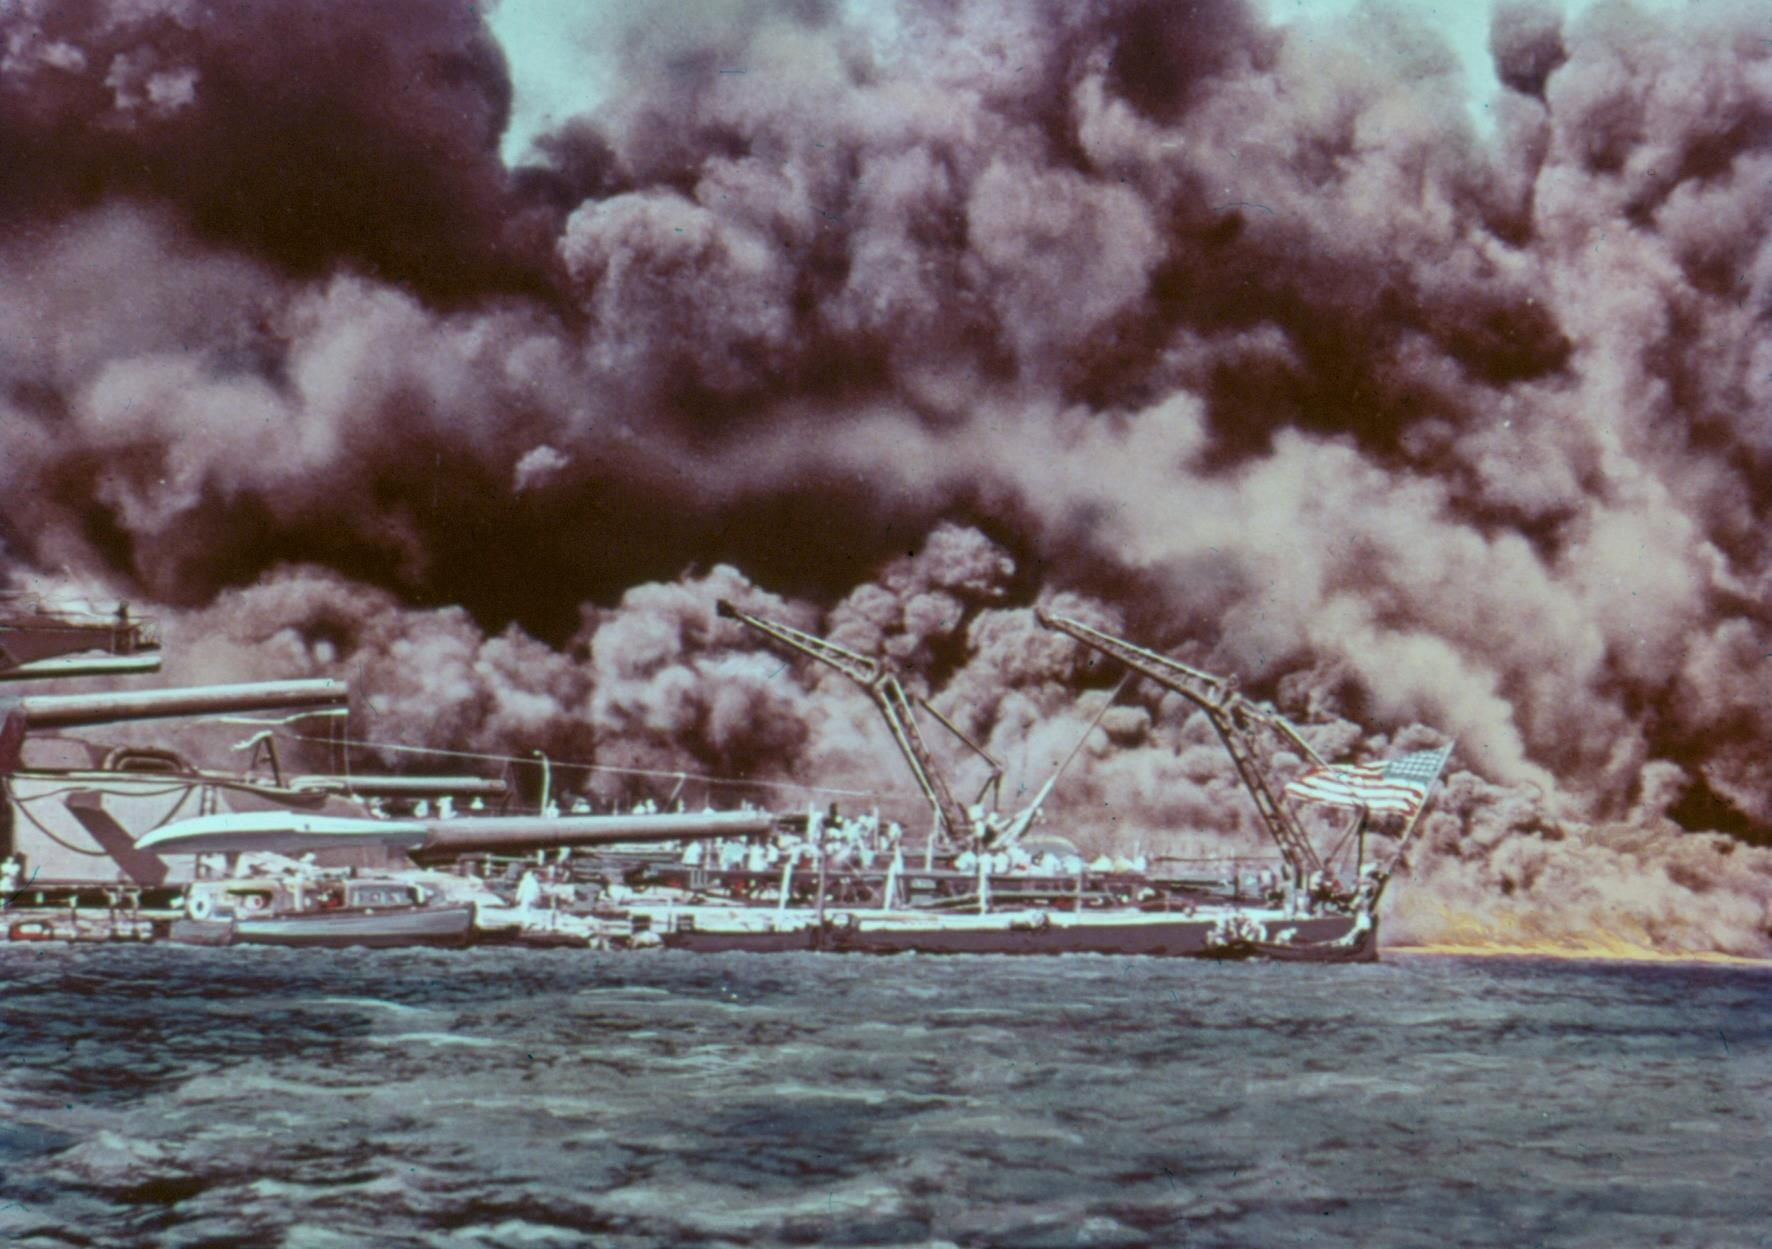 Vintage Dec. 7, 1941: U.S.S. Maryland during attack at Pearl Harbor, on Oahu.